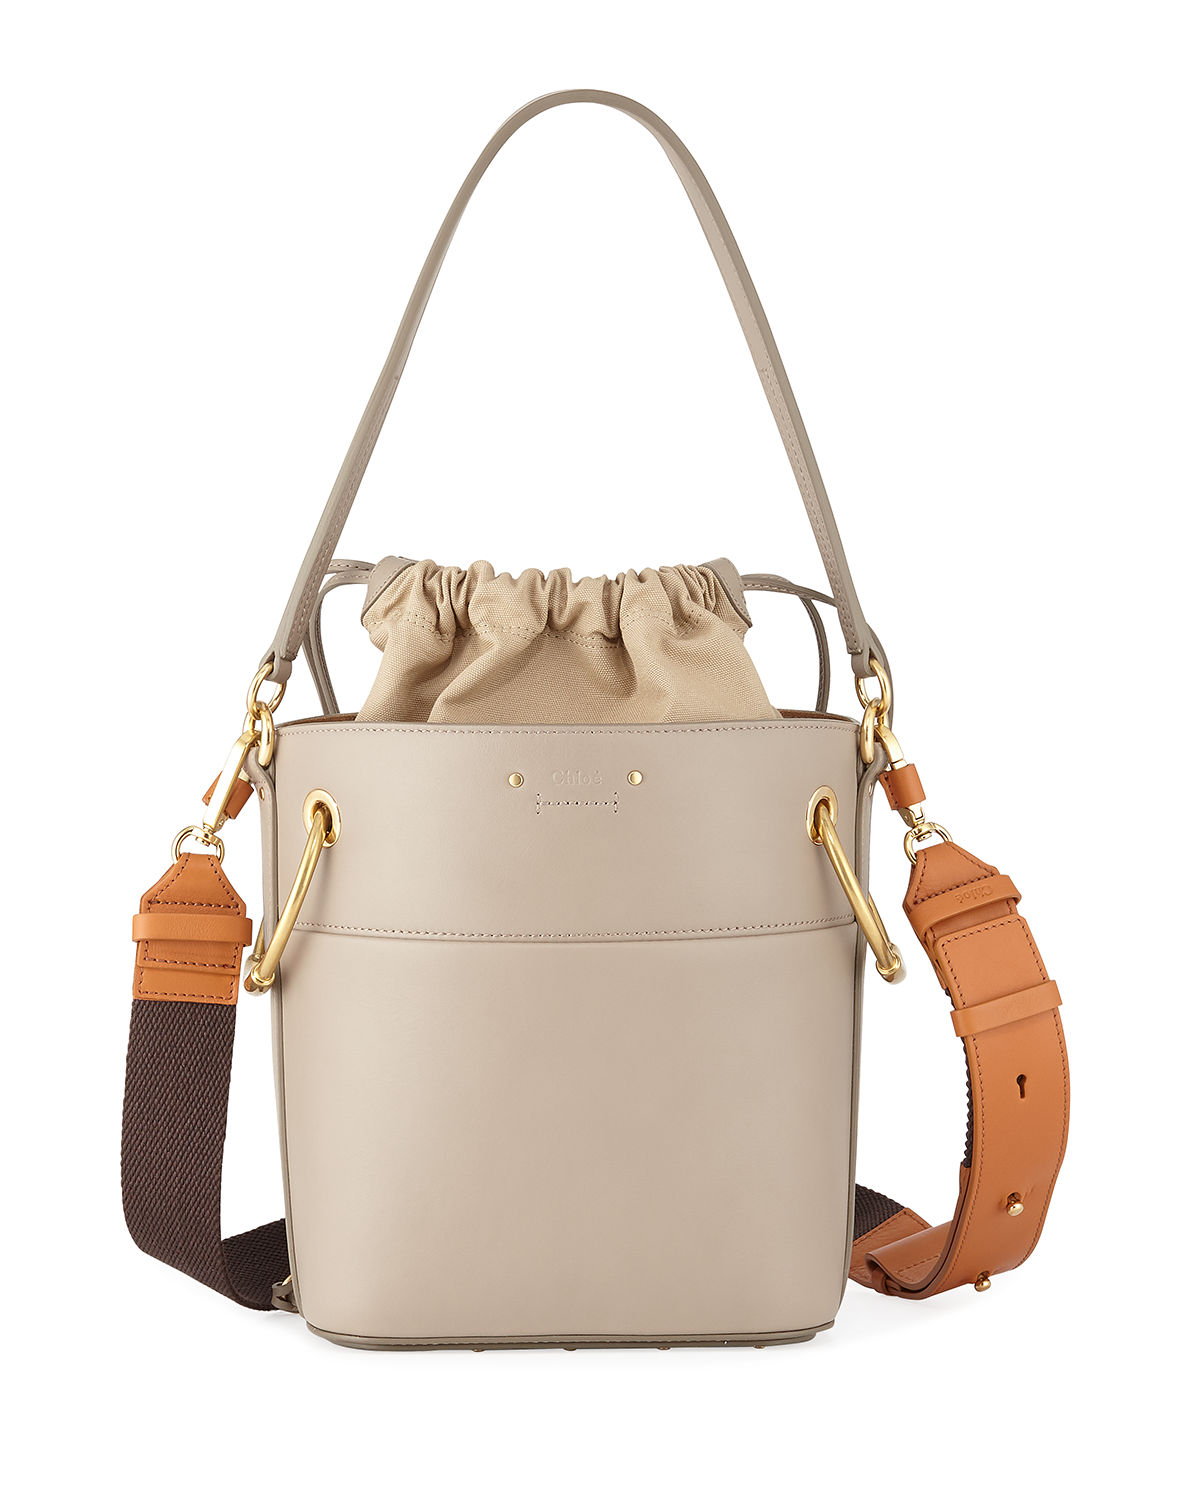 ff7032655c6d Chloe Roy Small Smooth Calf Leather Bucket Bag